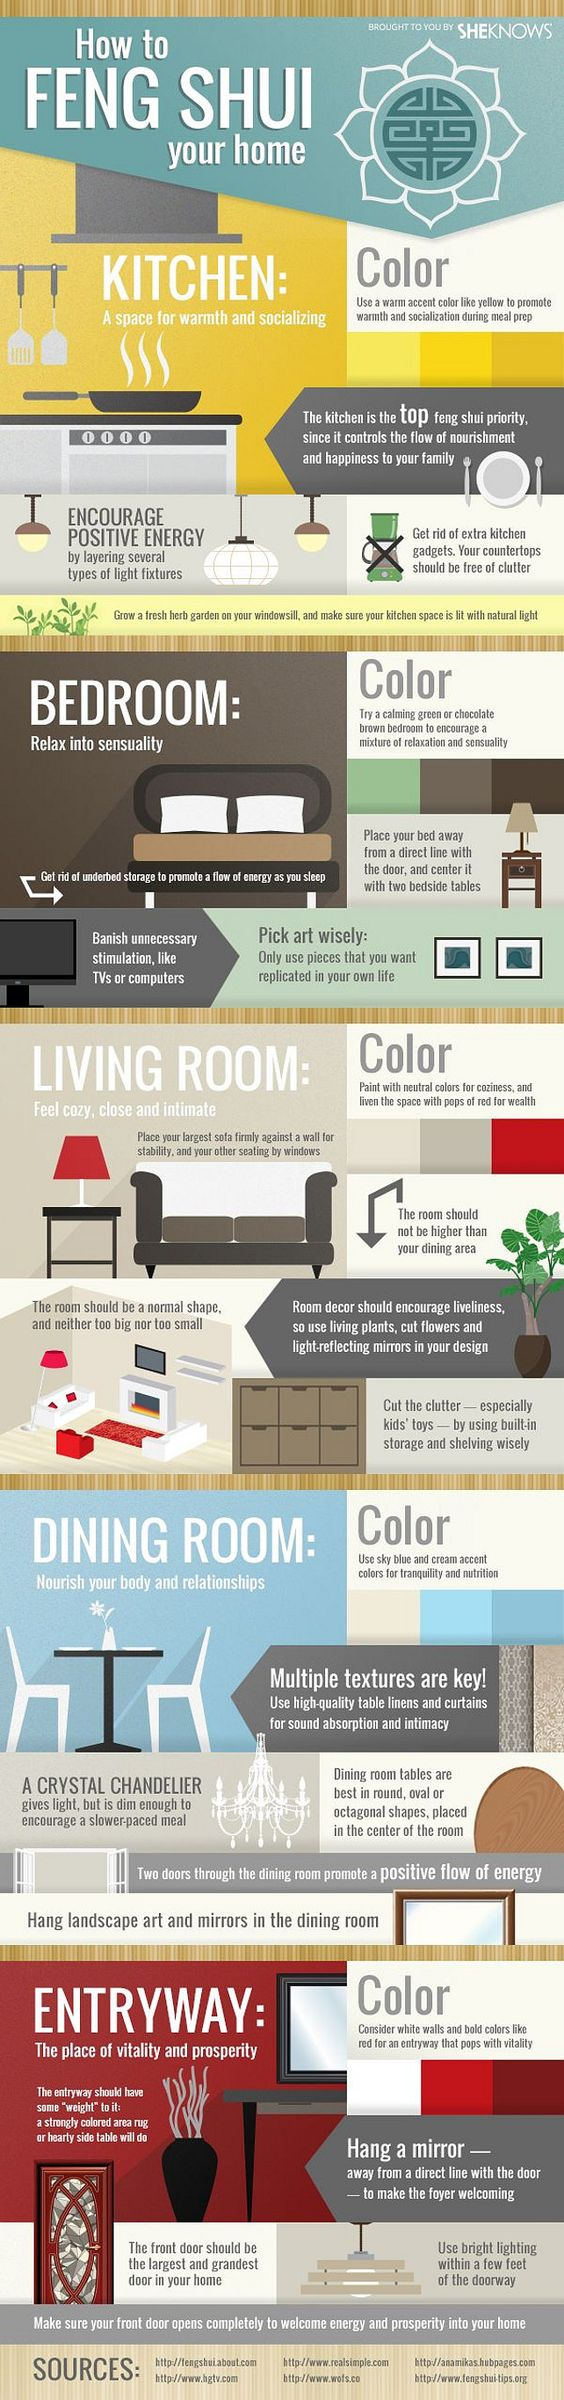 8 Feng Shui Tips to Improve Your Home and Life Enlight8